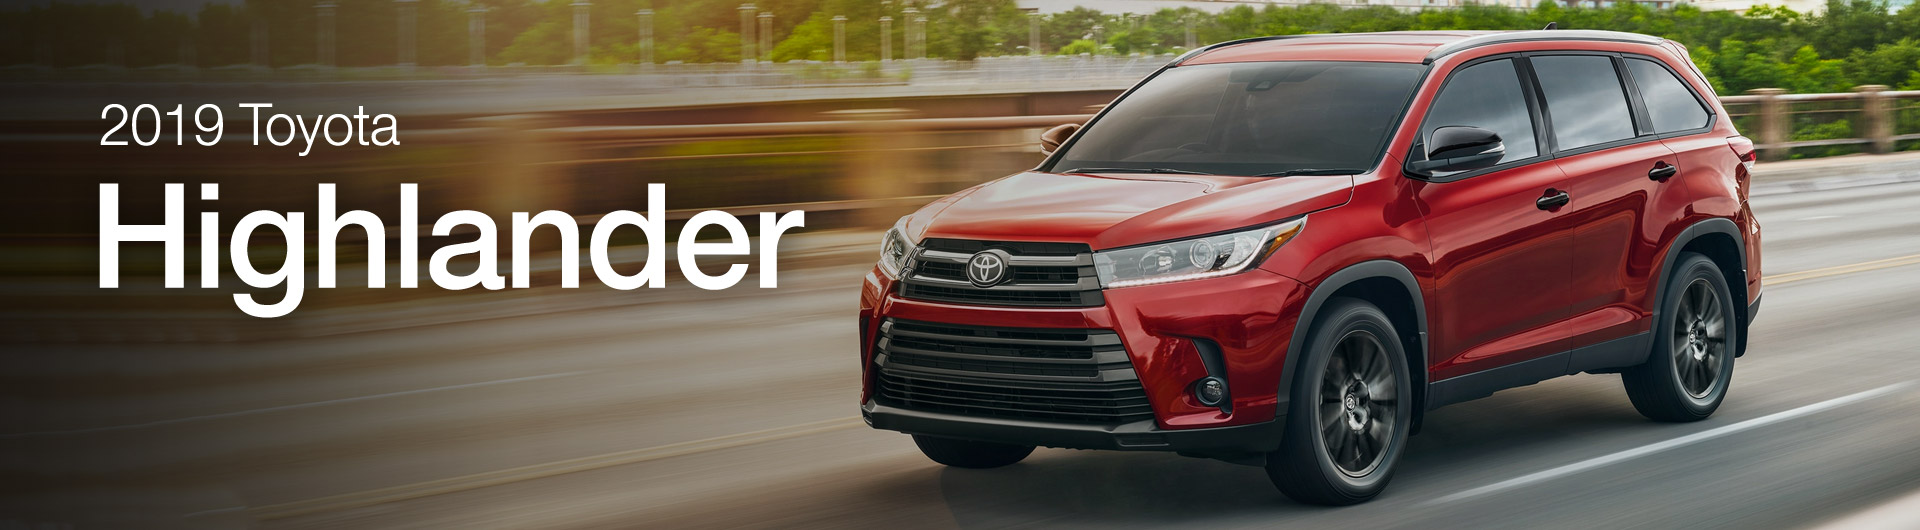 2019 Toyota Highlander Dealer in Tumwater WA | Toyota of Olympia